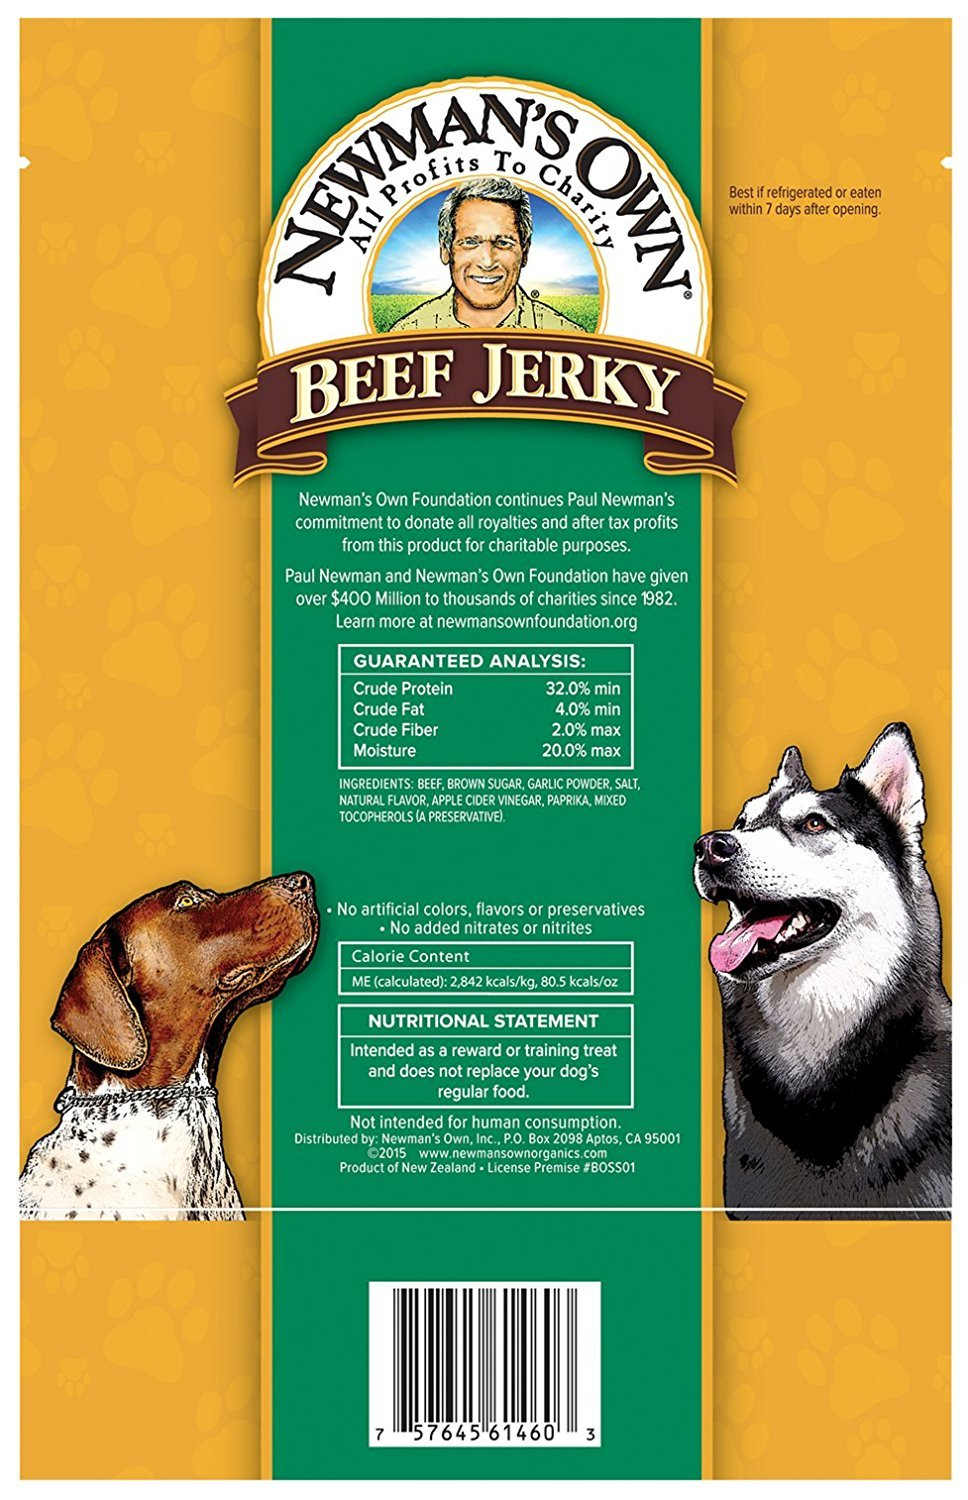 Newman's Own Grain Free Grass Fed Beef Jerky Dog Treats 2 Flavor Variety with Toy Bundle: (1) Original Recipe, and (1) Beef & Sweet Potato Recipe, 5 Oz. Ea. (2 Bags Total) by Newman's Own (Image #3)